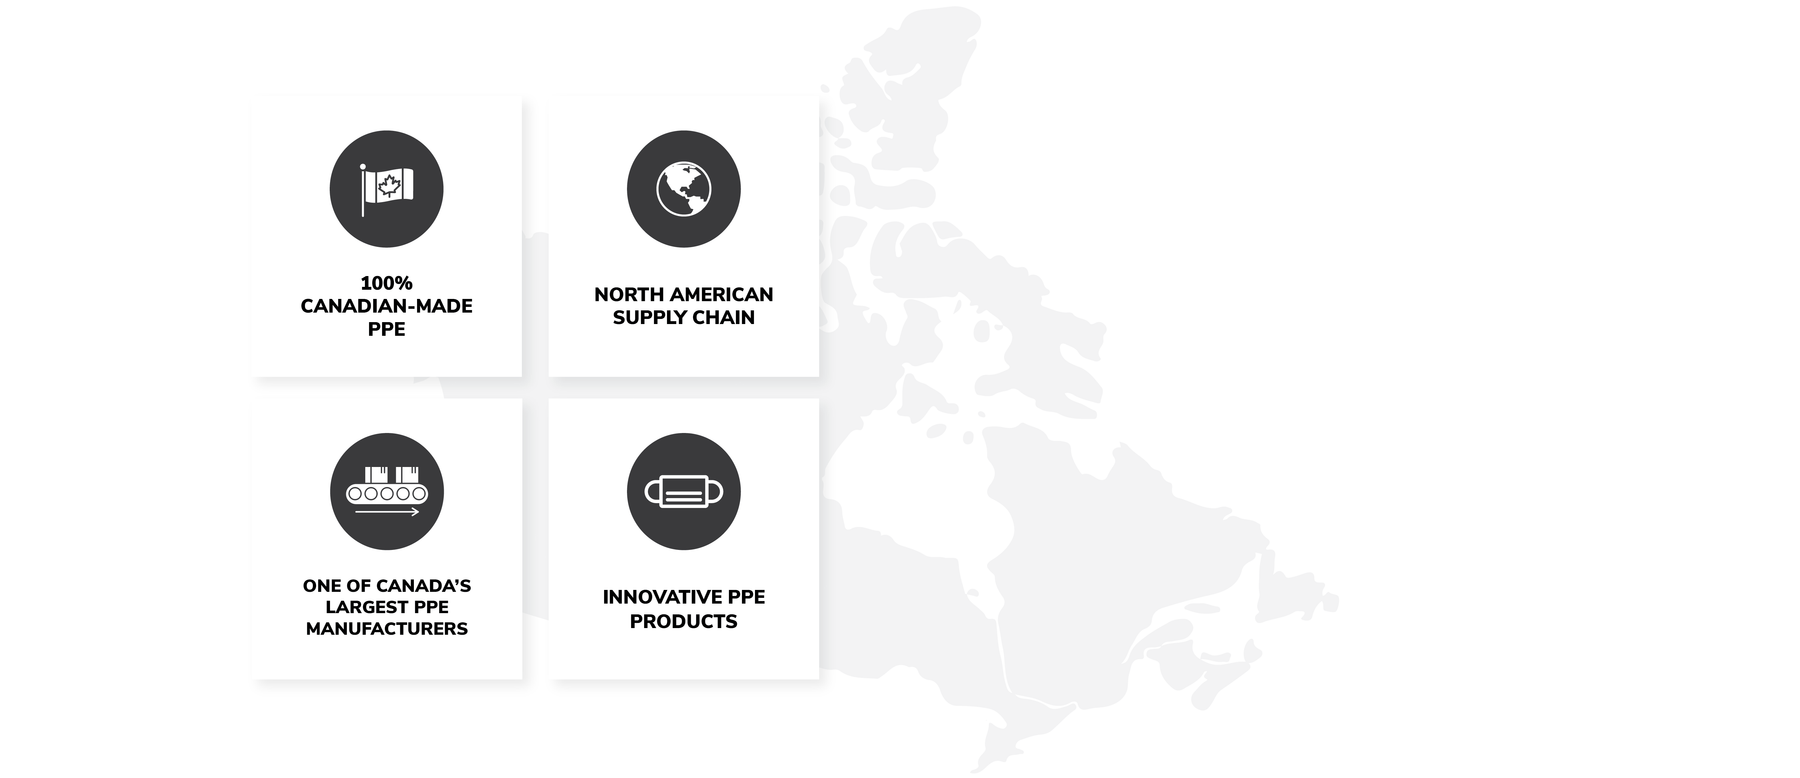 Image of The Canadian Shield key benefits: 100% Canadian-made PPE, North American Supply Chain, One of Canada's largest PPE manufacturers, Innovative PPE products.